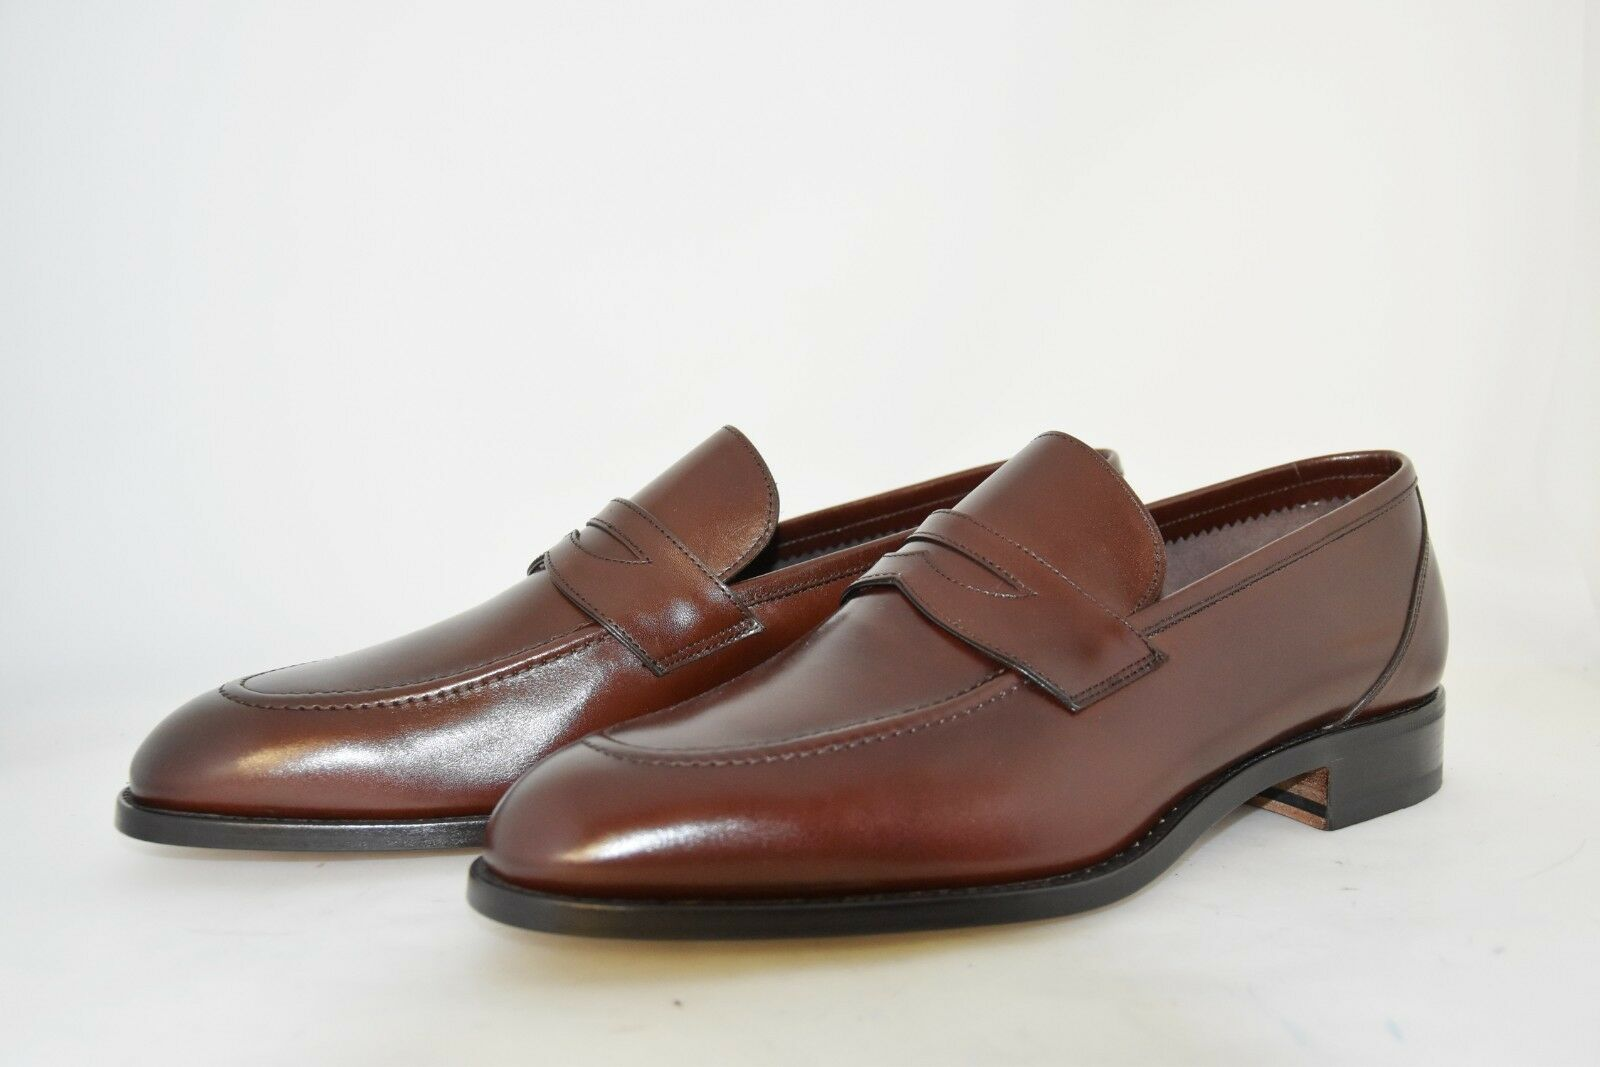 MAN-10eu-11us-PENNY LOAFER-MOCASSINO-Marroneee CALF-VITELLO MarroneeeE-LEATHER SOLE